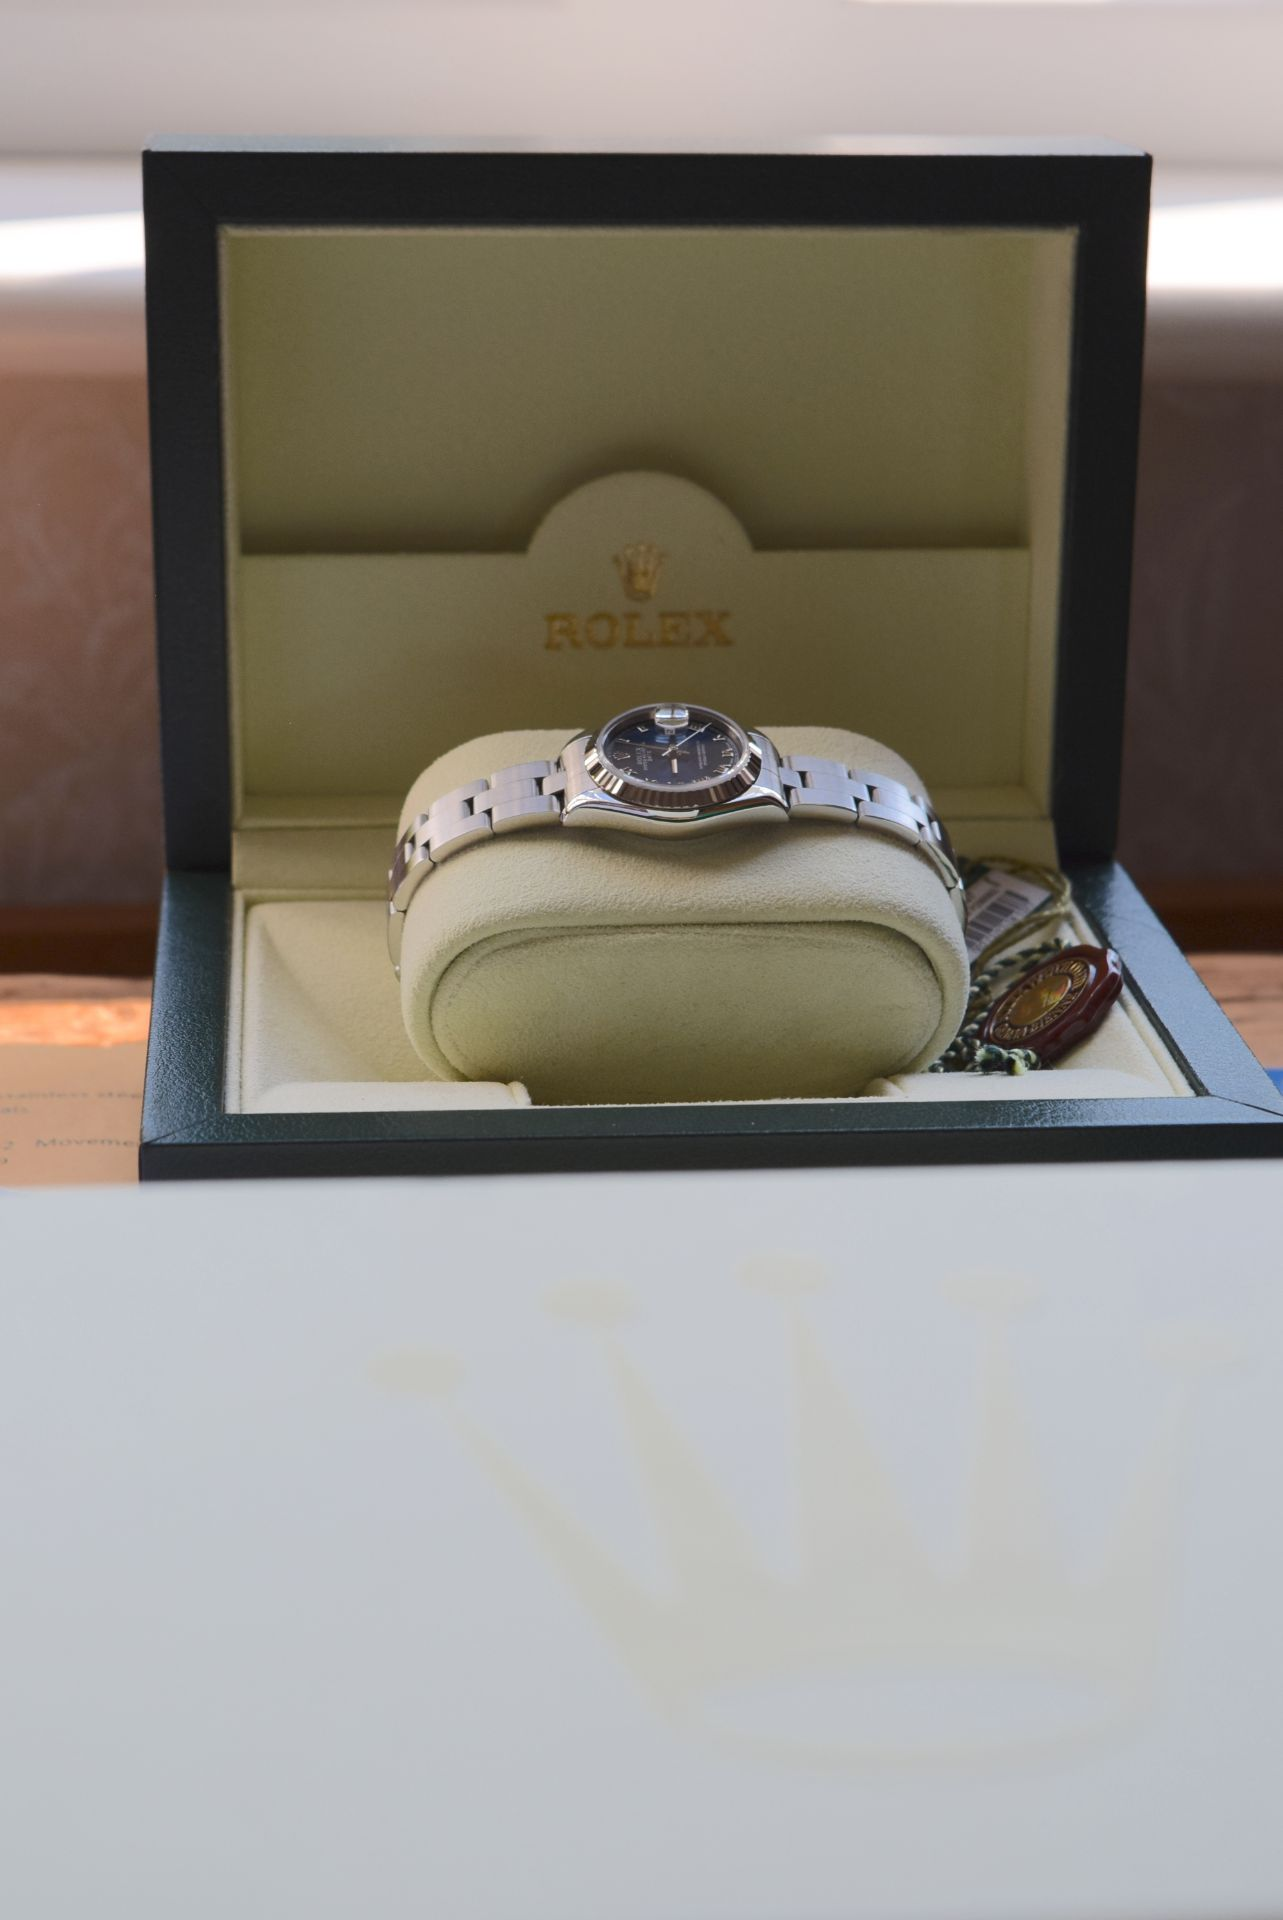 *FULL SET* ROLEX DATEJUST (LADIES) STEEL & 18CT WHITE GOLD - NAVY BLUE 'ROMAN NUMERAL' DIAL - Image 6 of 19